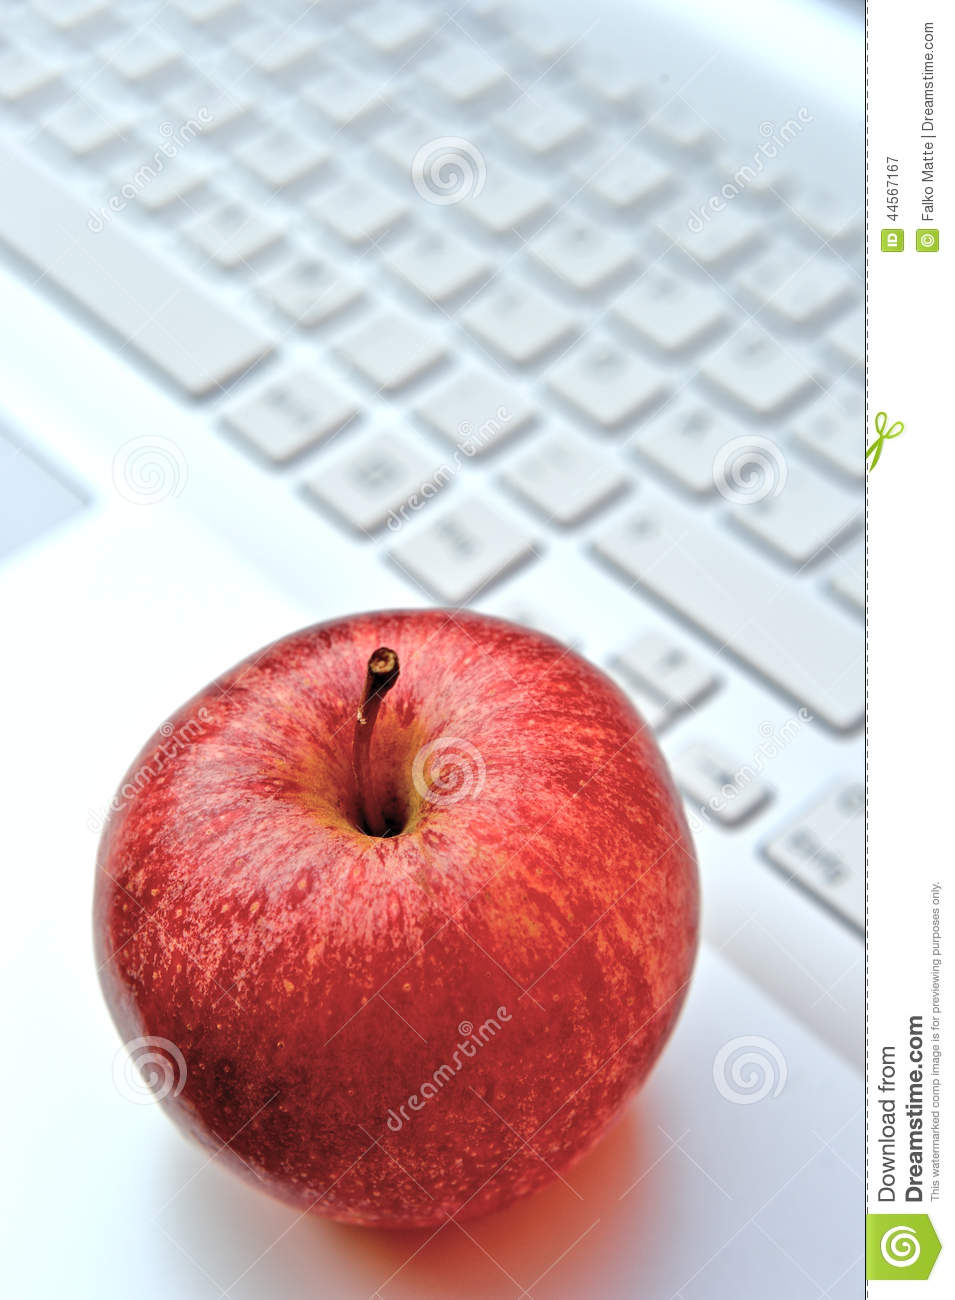 Apple on keyboard